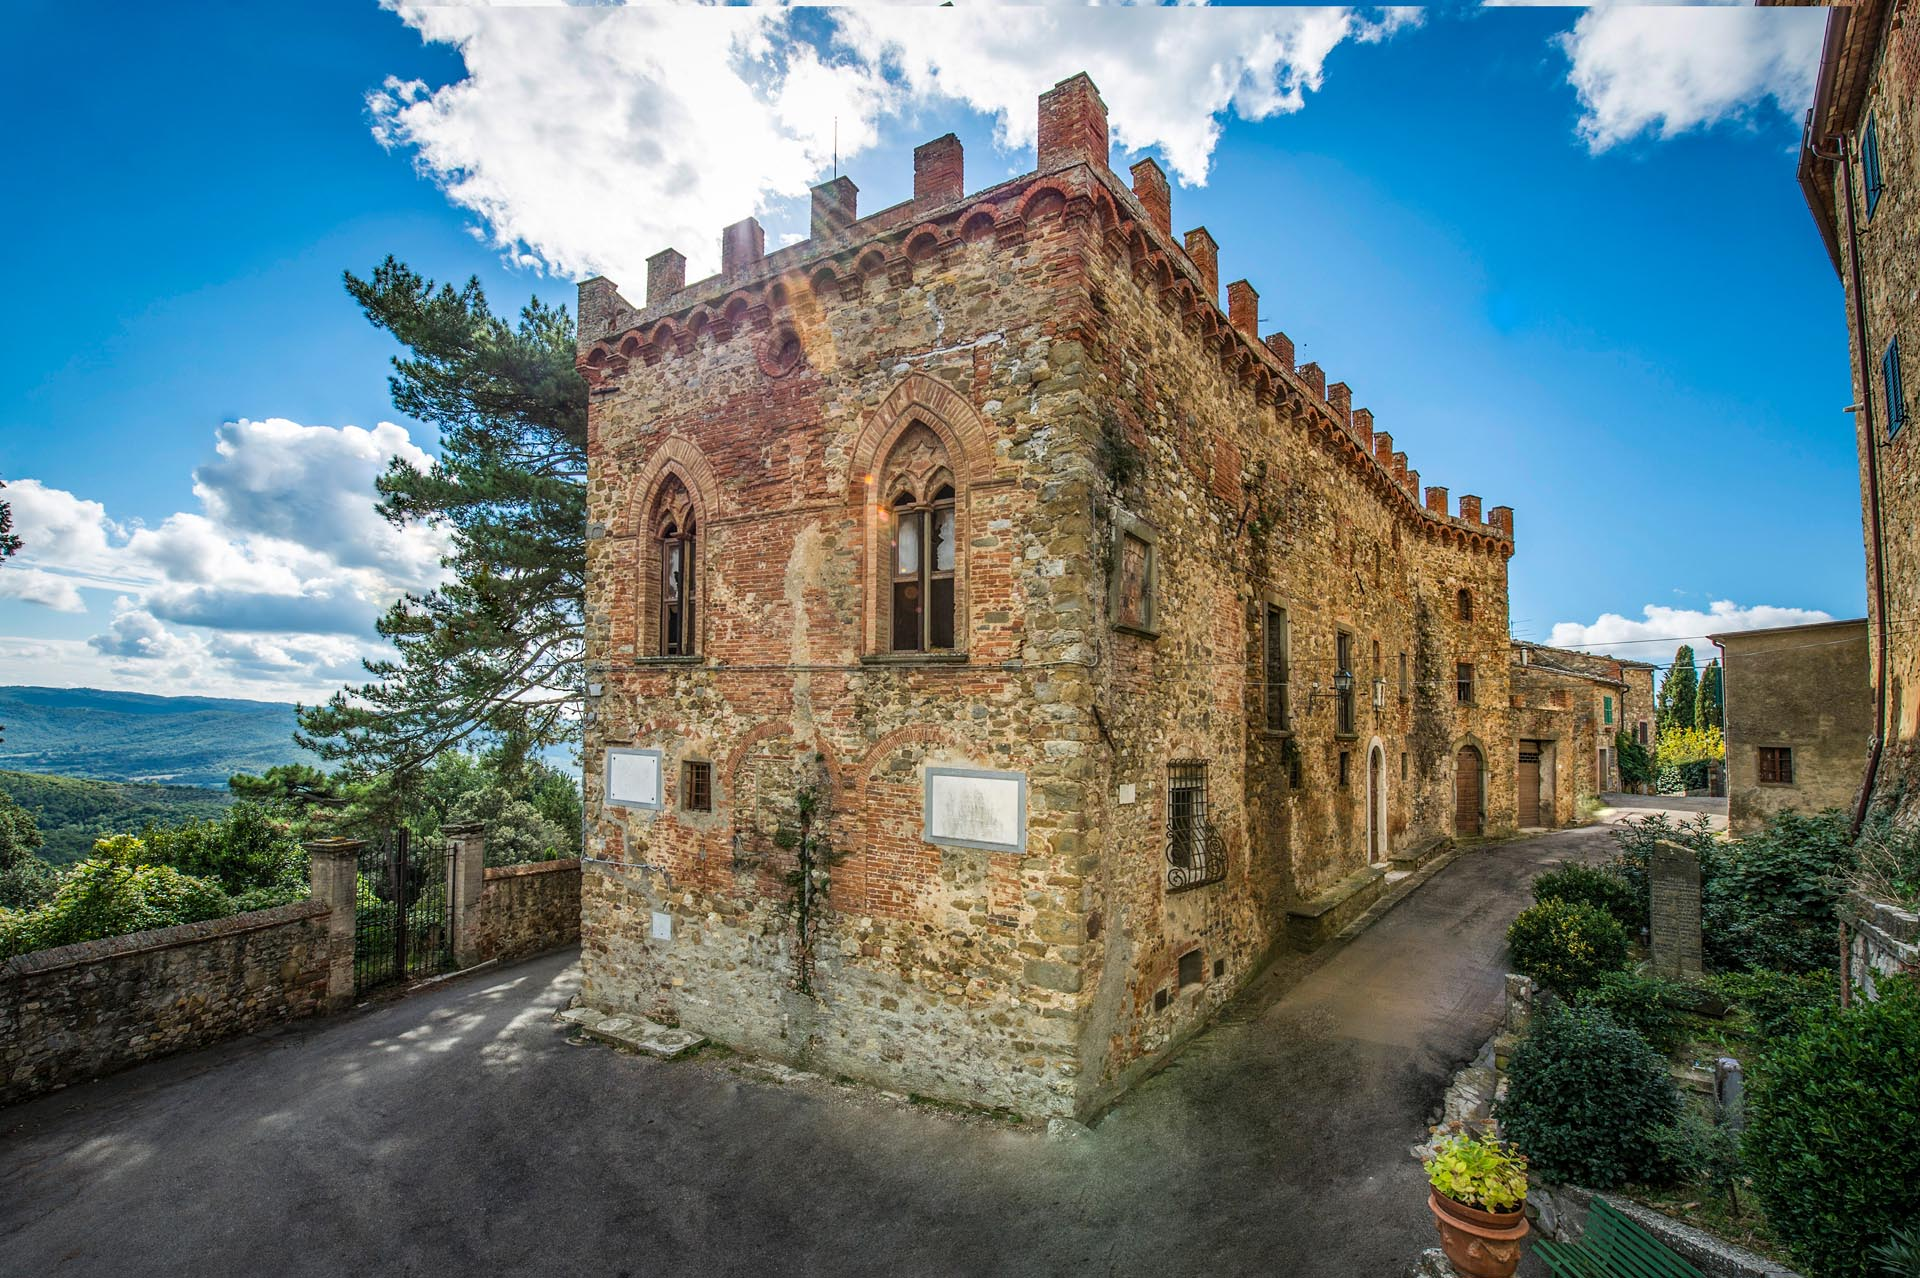 MEDIEVAL FORTRESS FOR SALE IN TUSCANY